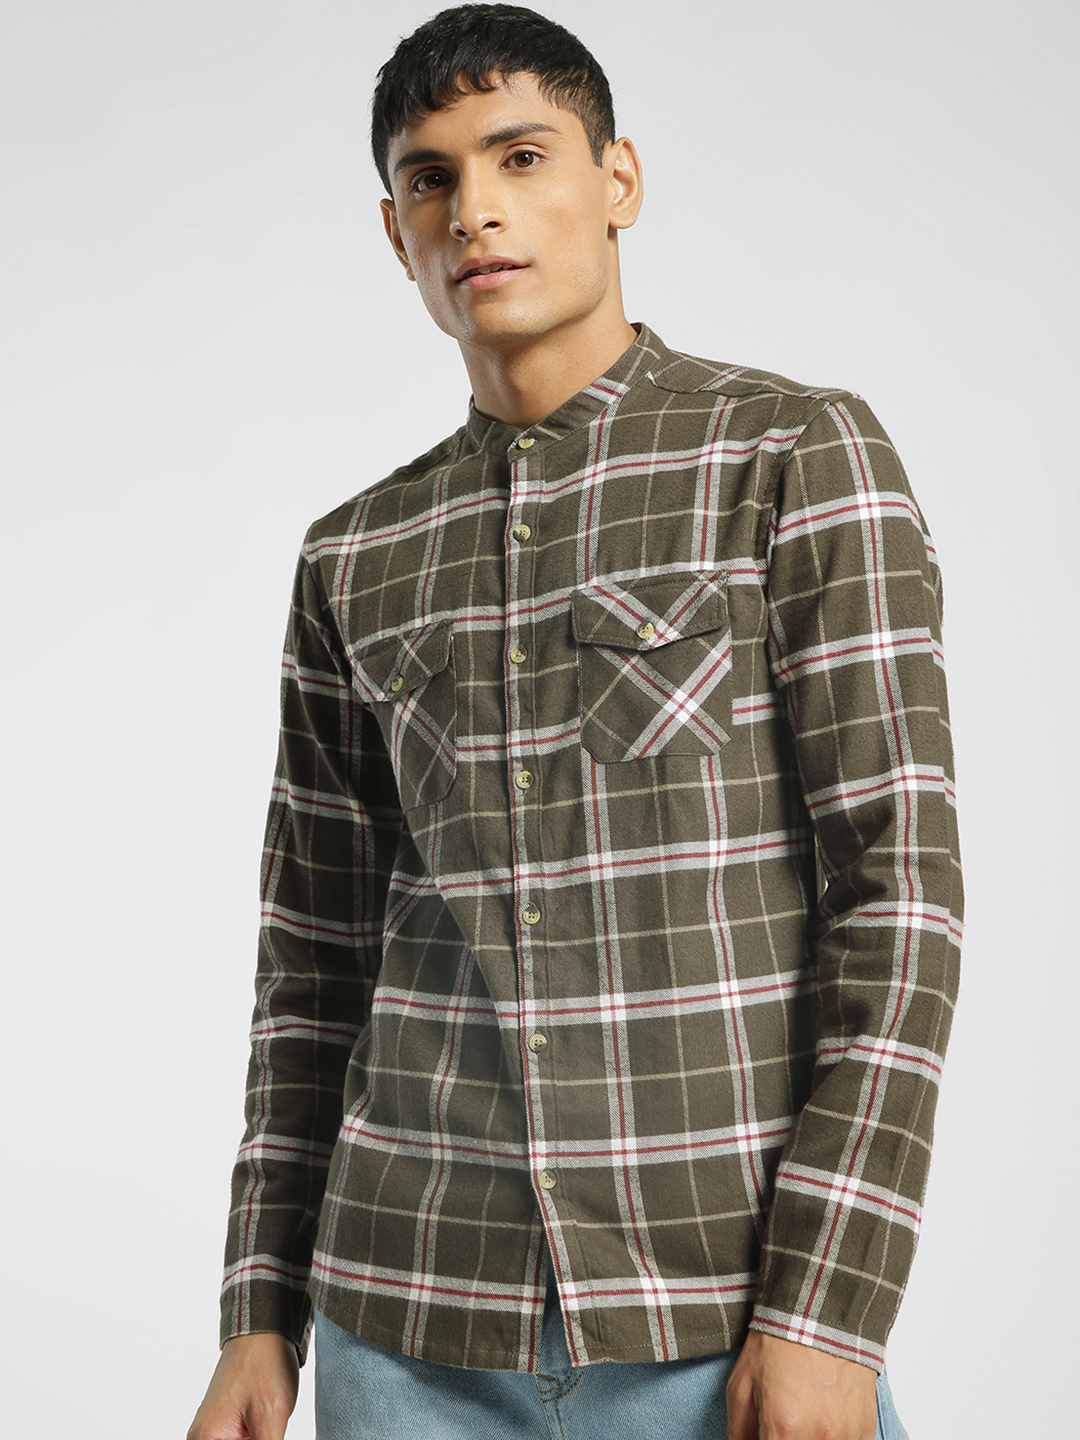 TRUE RUG Olive Multi Check Mandarin Collar Shirt 1